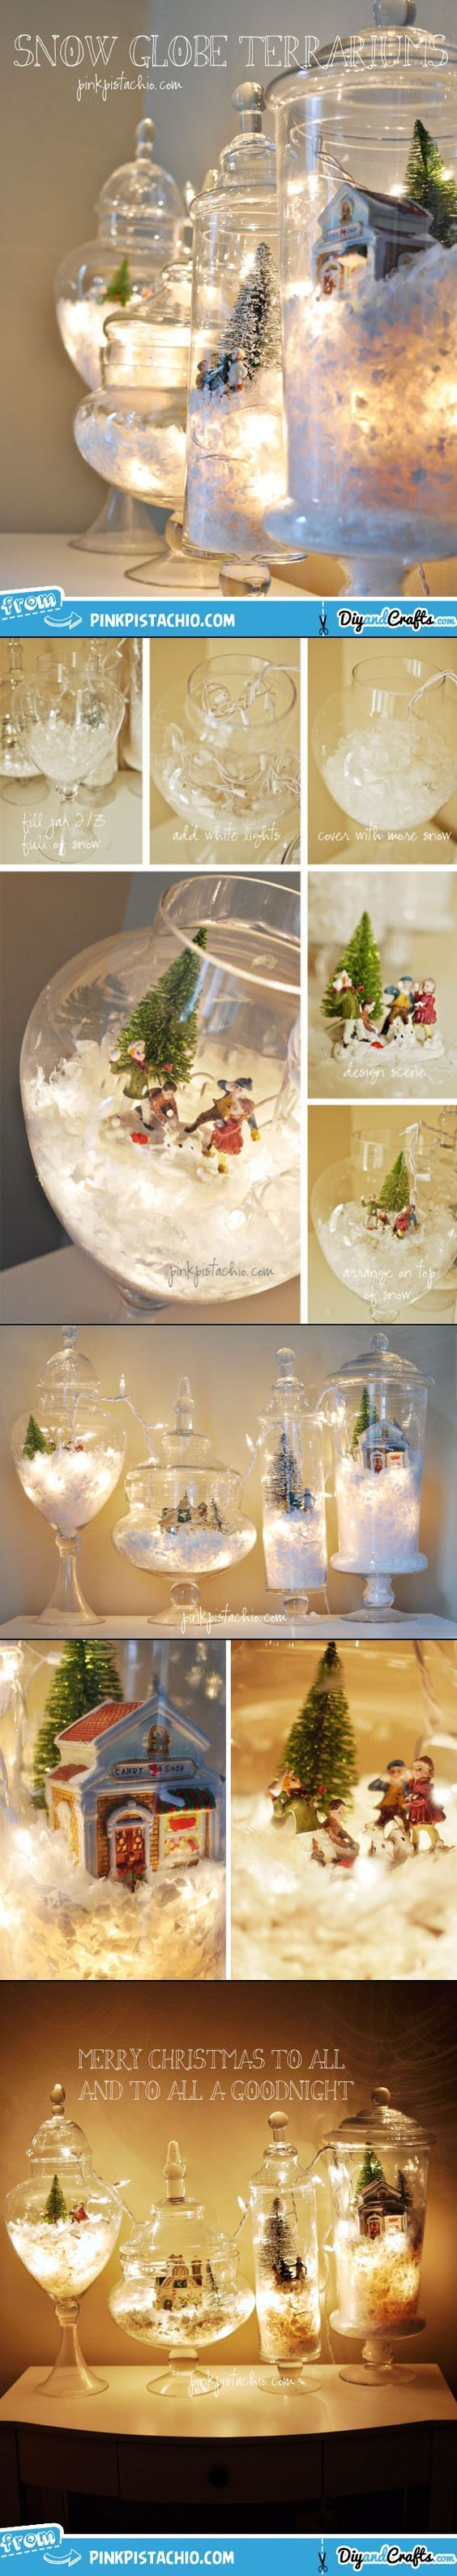 Snow Globe Terrariums | DIY: